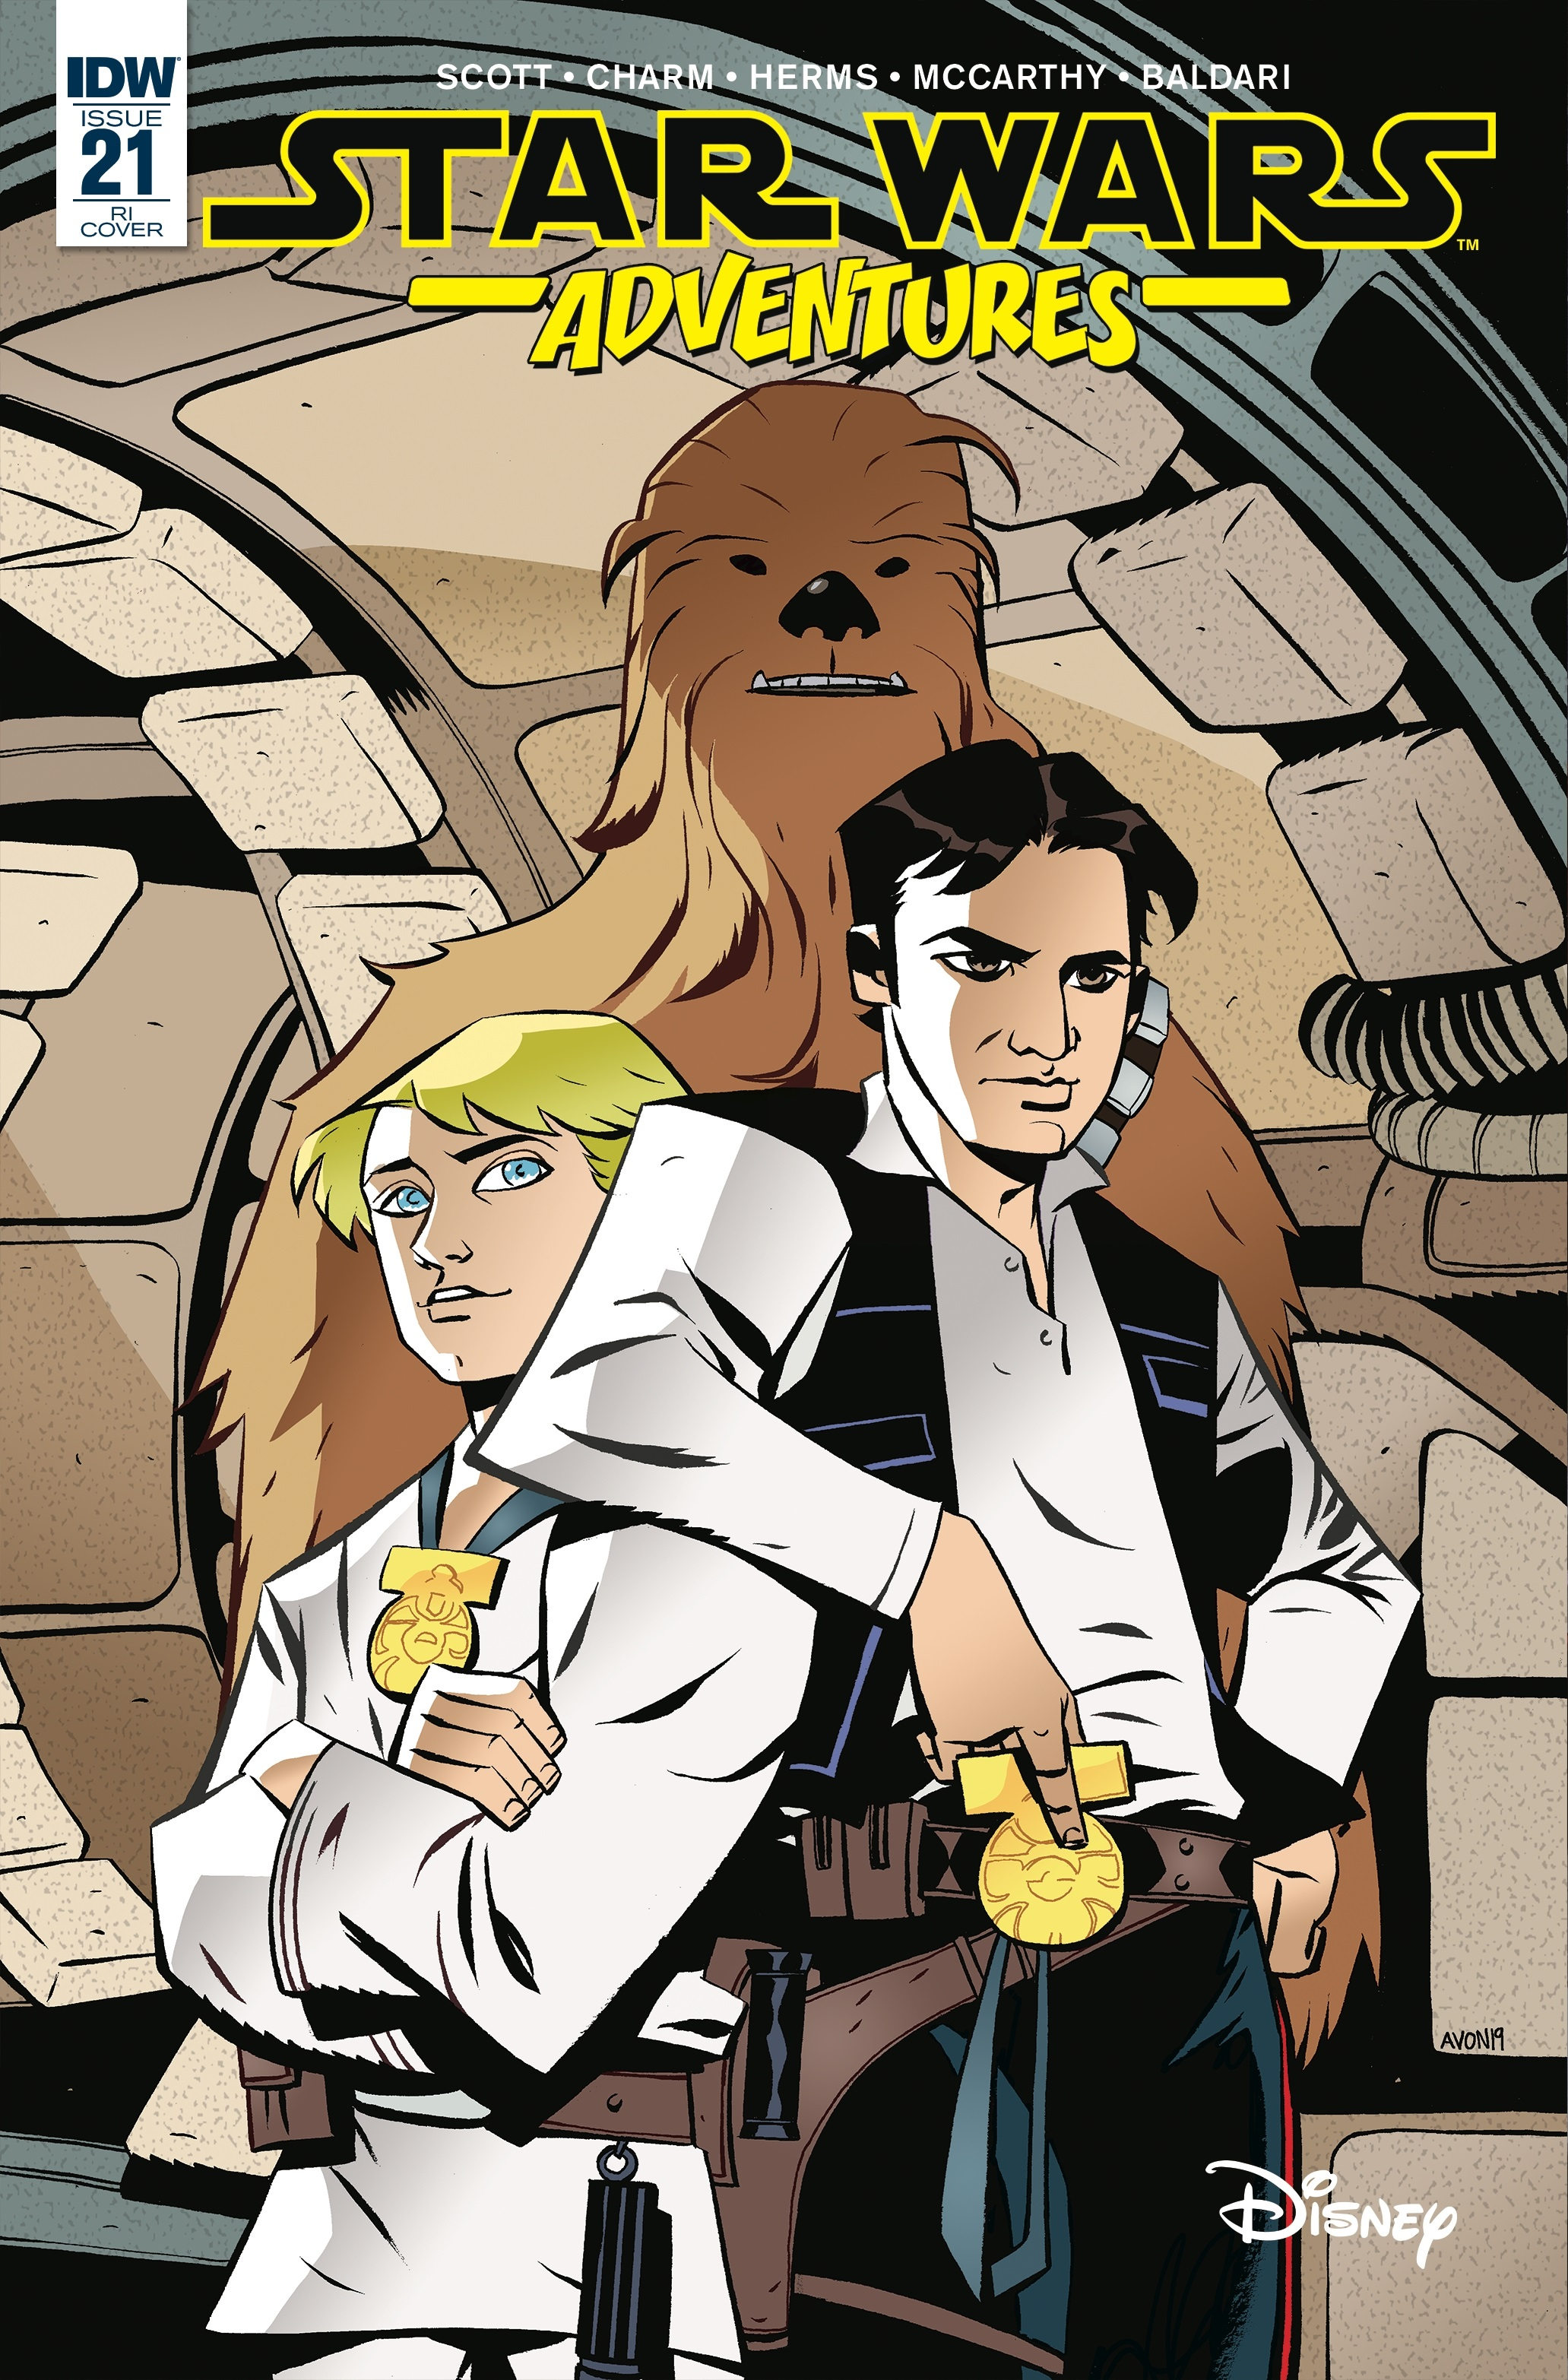 Star Wars Adventures #21 (Mike Oeming Variant Cover) (08.05.2019)